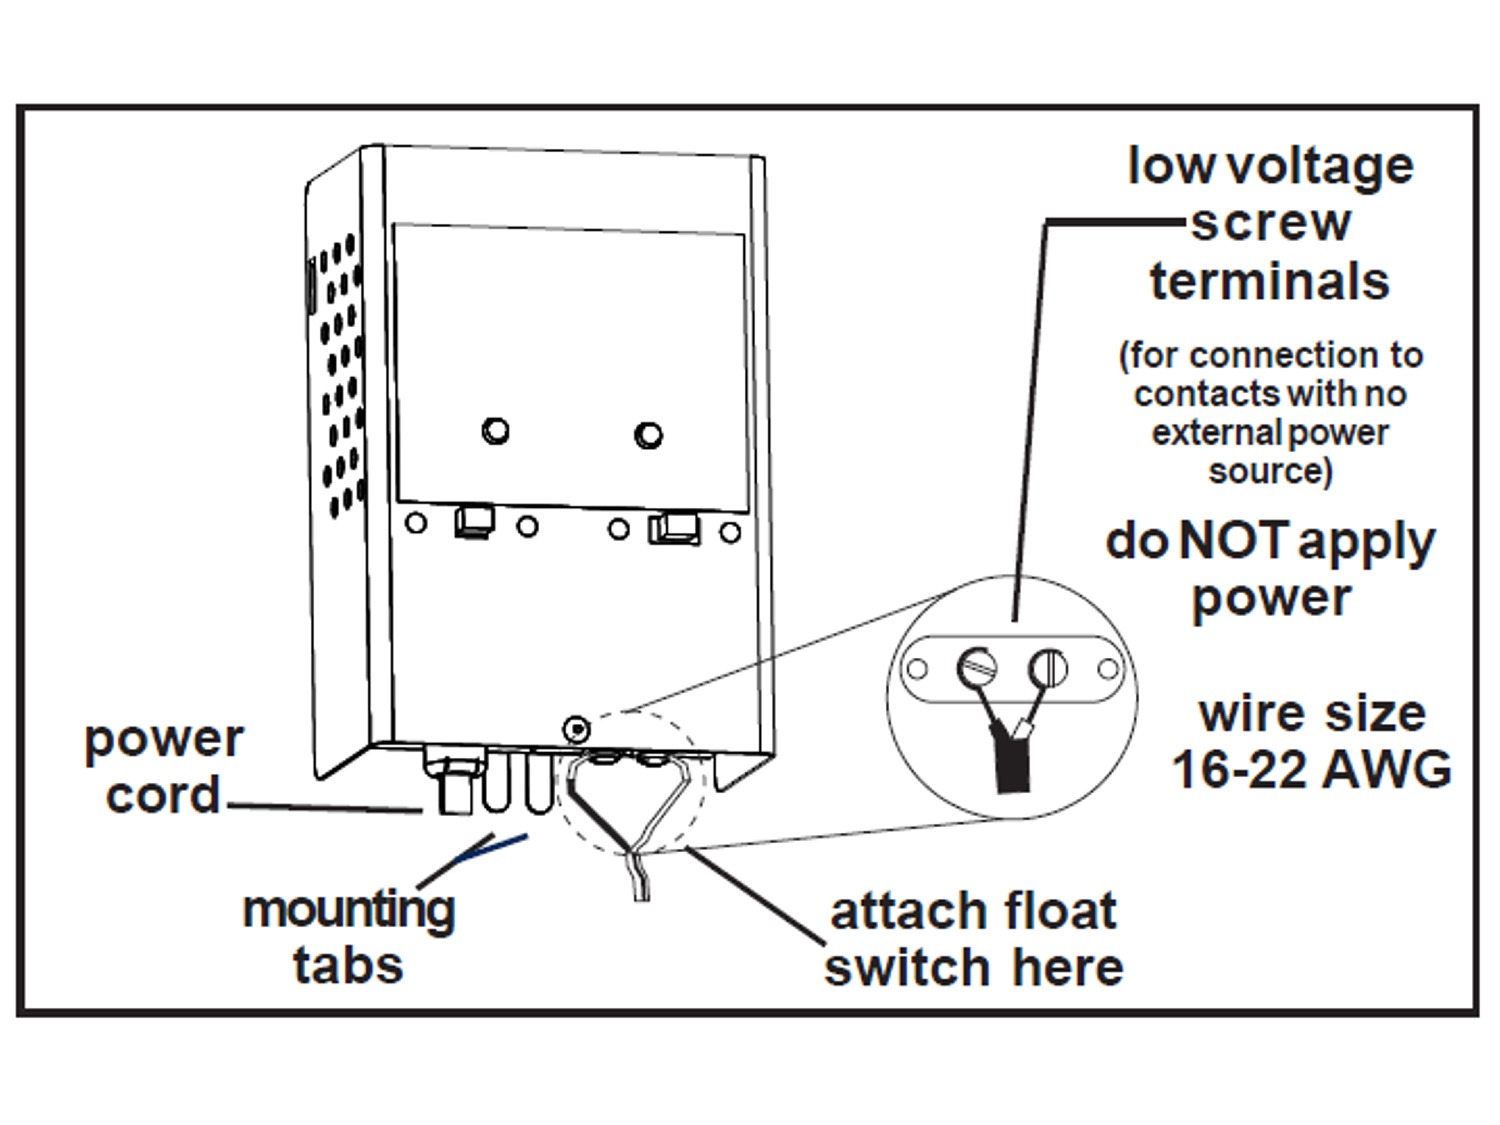 Septic Tank Wiring Schematic Manual E Books Pump Relay Diagram Diagramseptic Libraryseptic Another